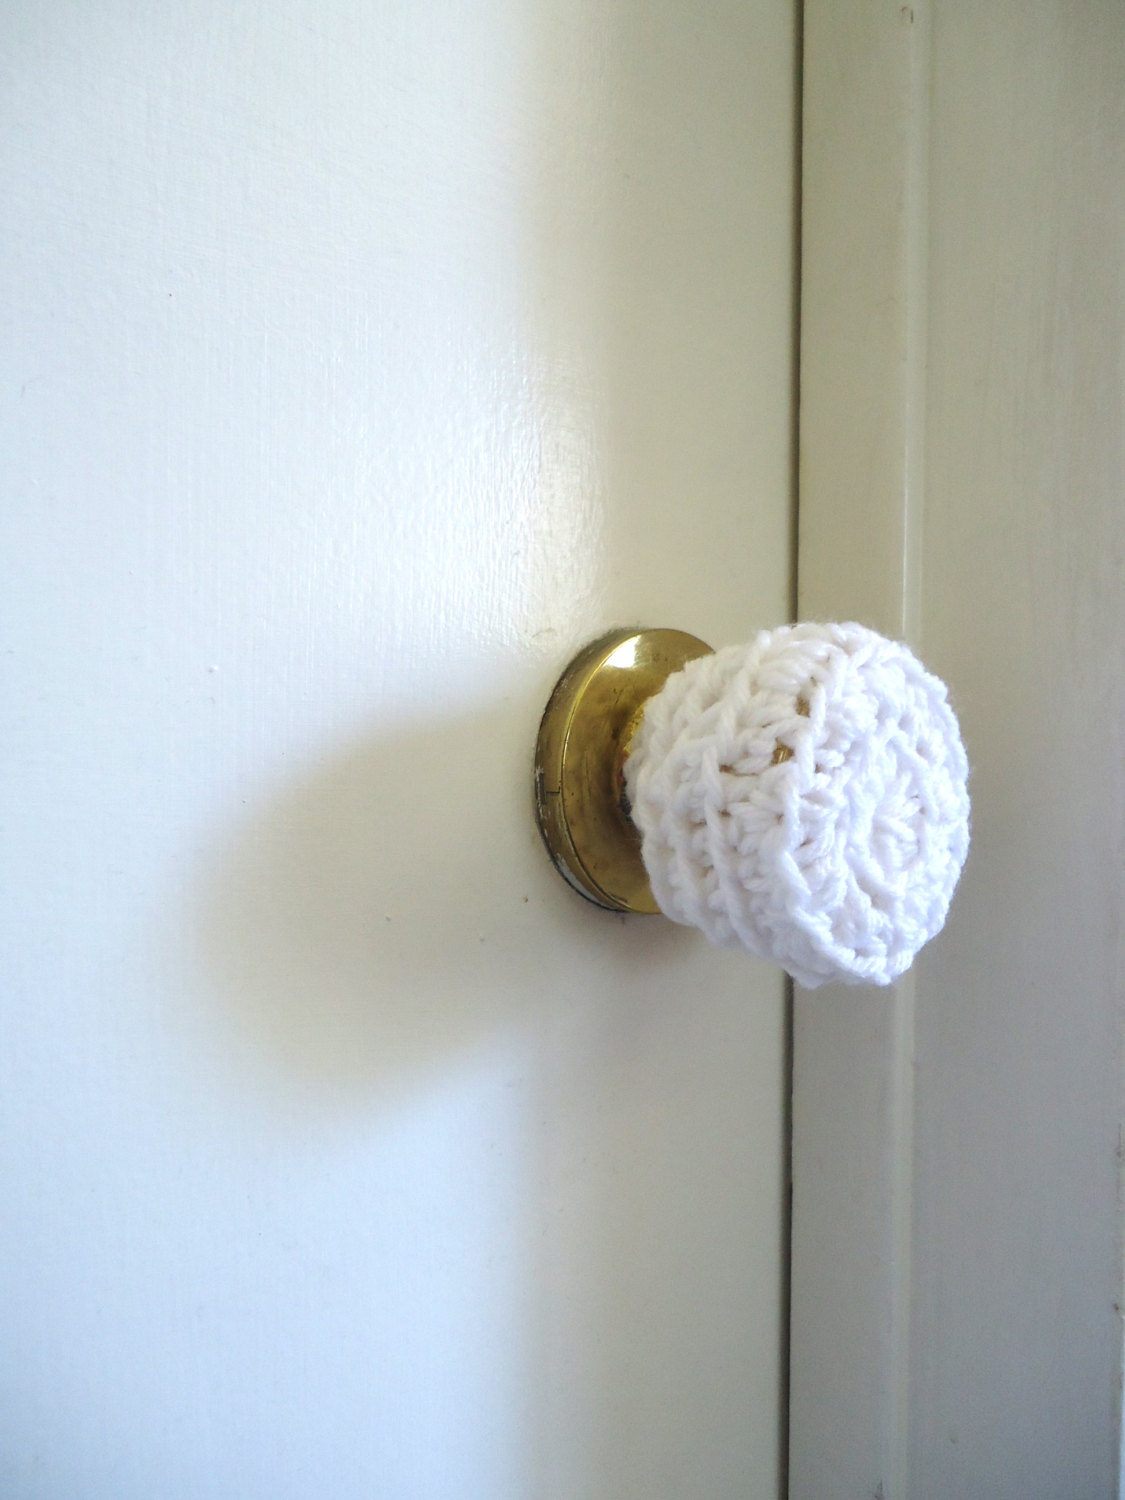 Child Safety Door Knob Covers Door Knobs